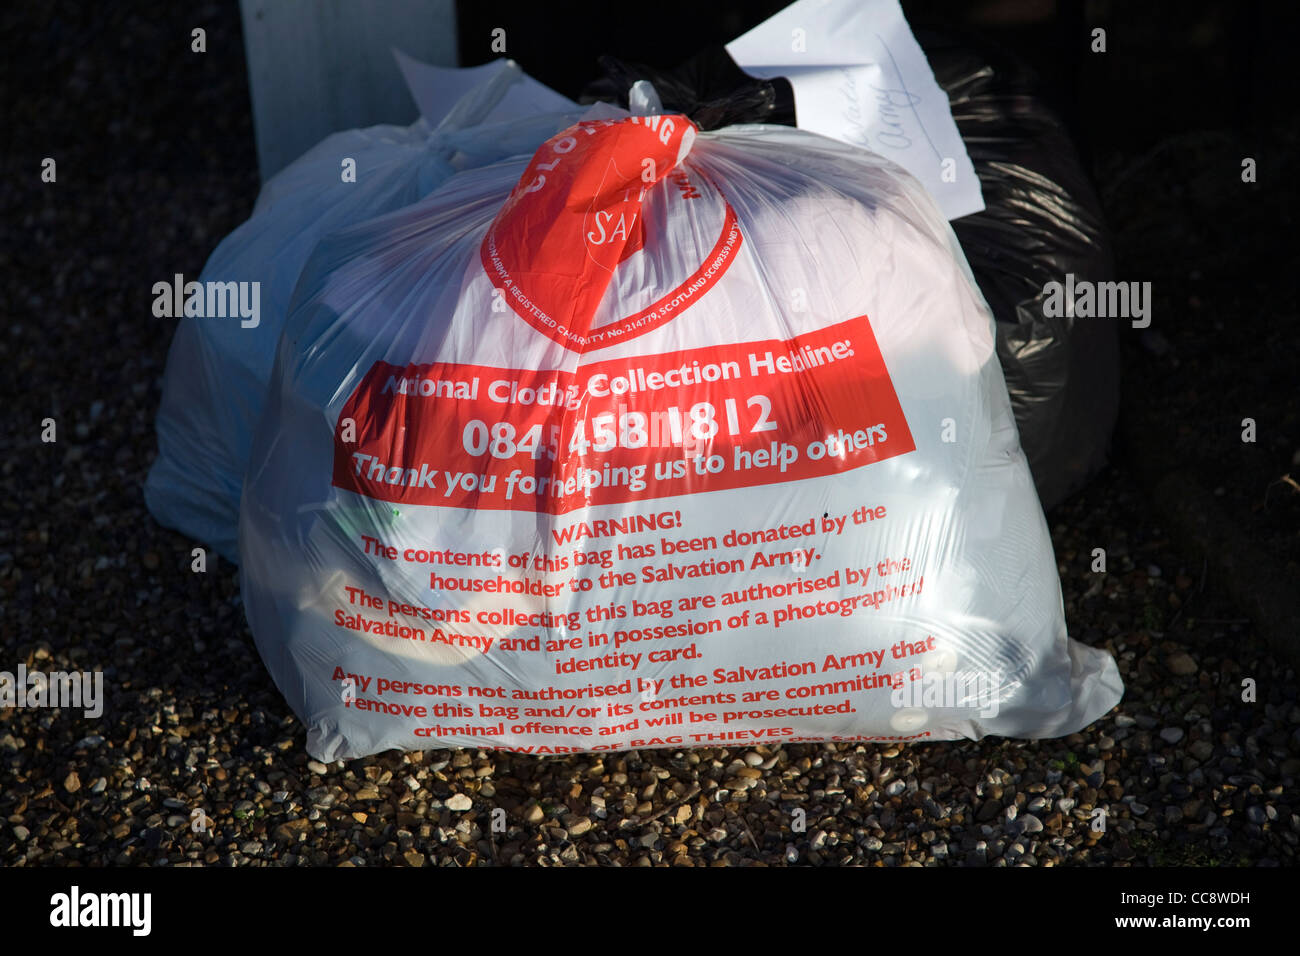 Charity clothes donations collection plastic bags - Stock Image